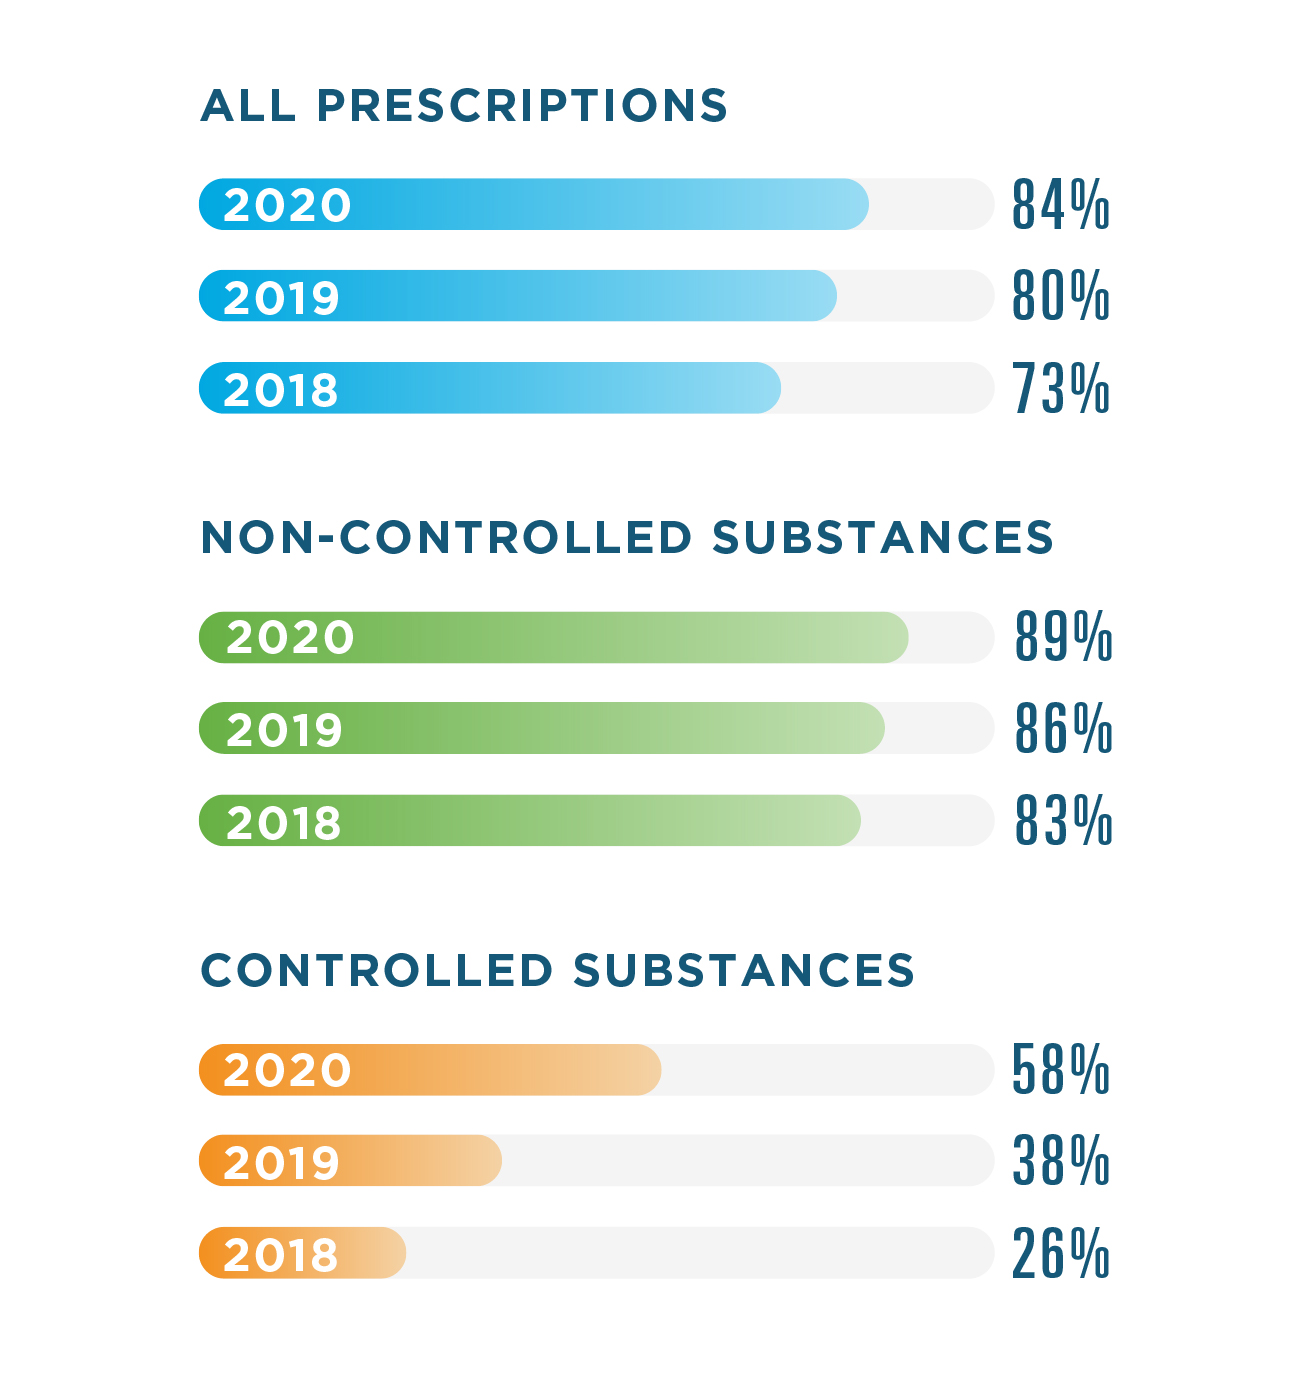 In 2020, 84% of all prescriptions, 89% of non-controlled substances and 58% of controlled substances were electronically prescribed. In 2019, 80% of all prescriptions, 86% of non-controlled substances and 38% of controlled substances were electronically prescribed. In 2018, 73% of all prescriptions, 83% of non-controlled substances and 26% of controlled substances were electronically prescribed.